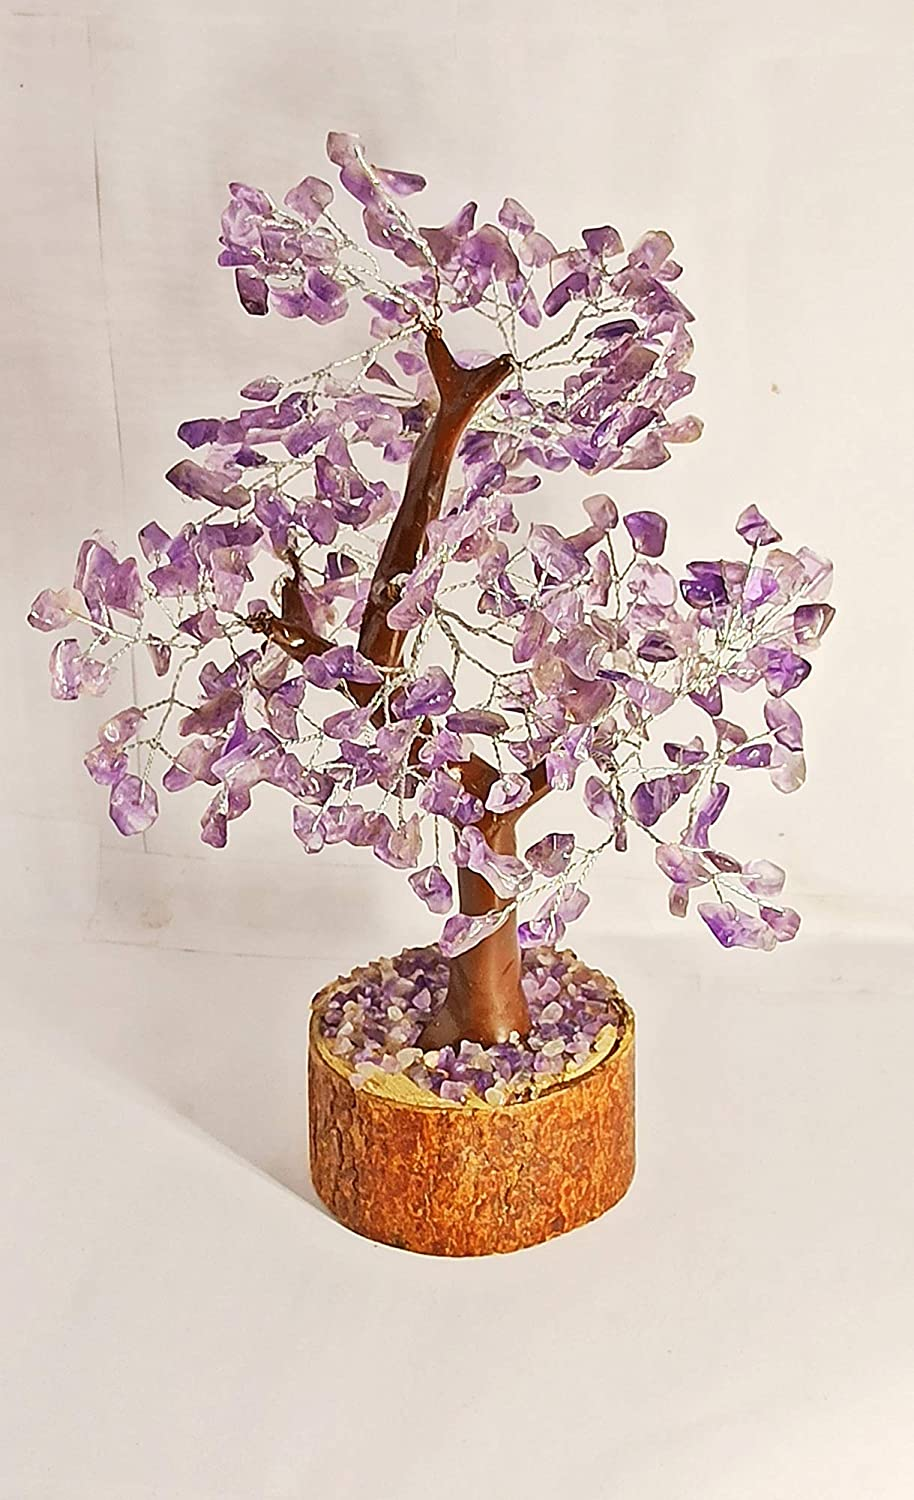 WholesaleGemShop Natural Amethyst Gemstone Tree Silver Wired Handmade Tree of Life Necklace Gift Bonsai Fortune Money Tree for Good Luck,Wealth & Prosperity-Home Office Decor